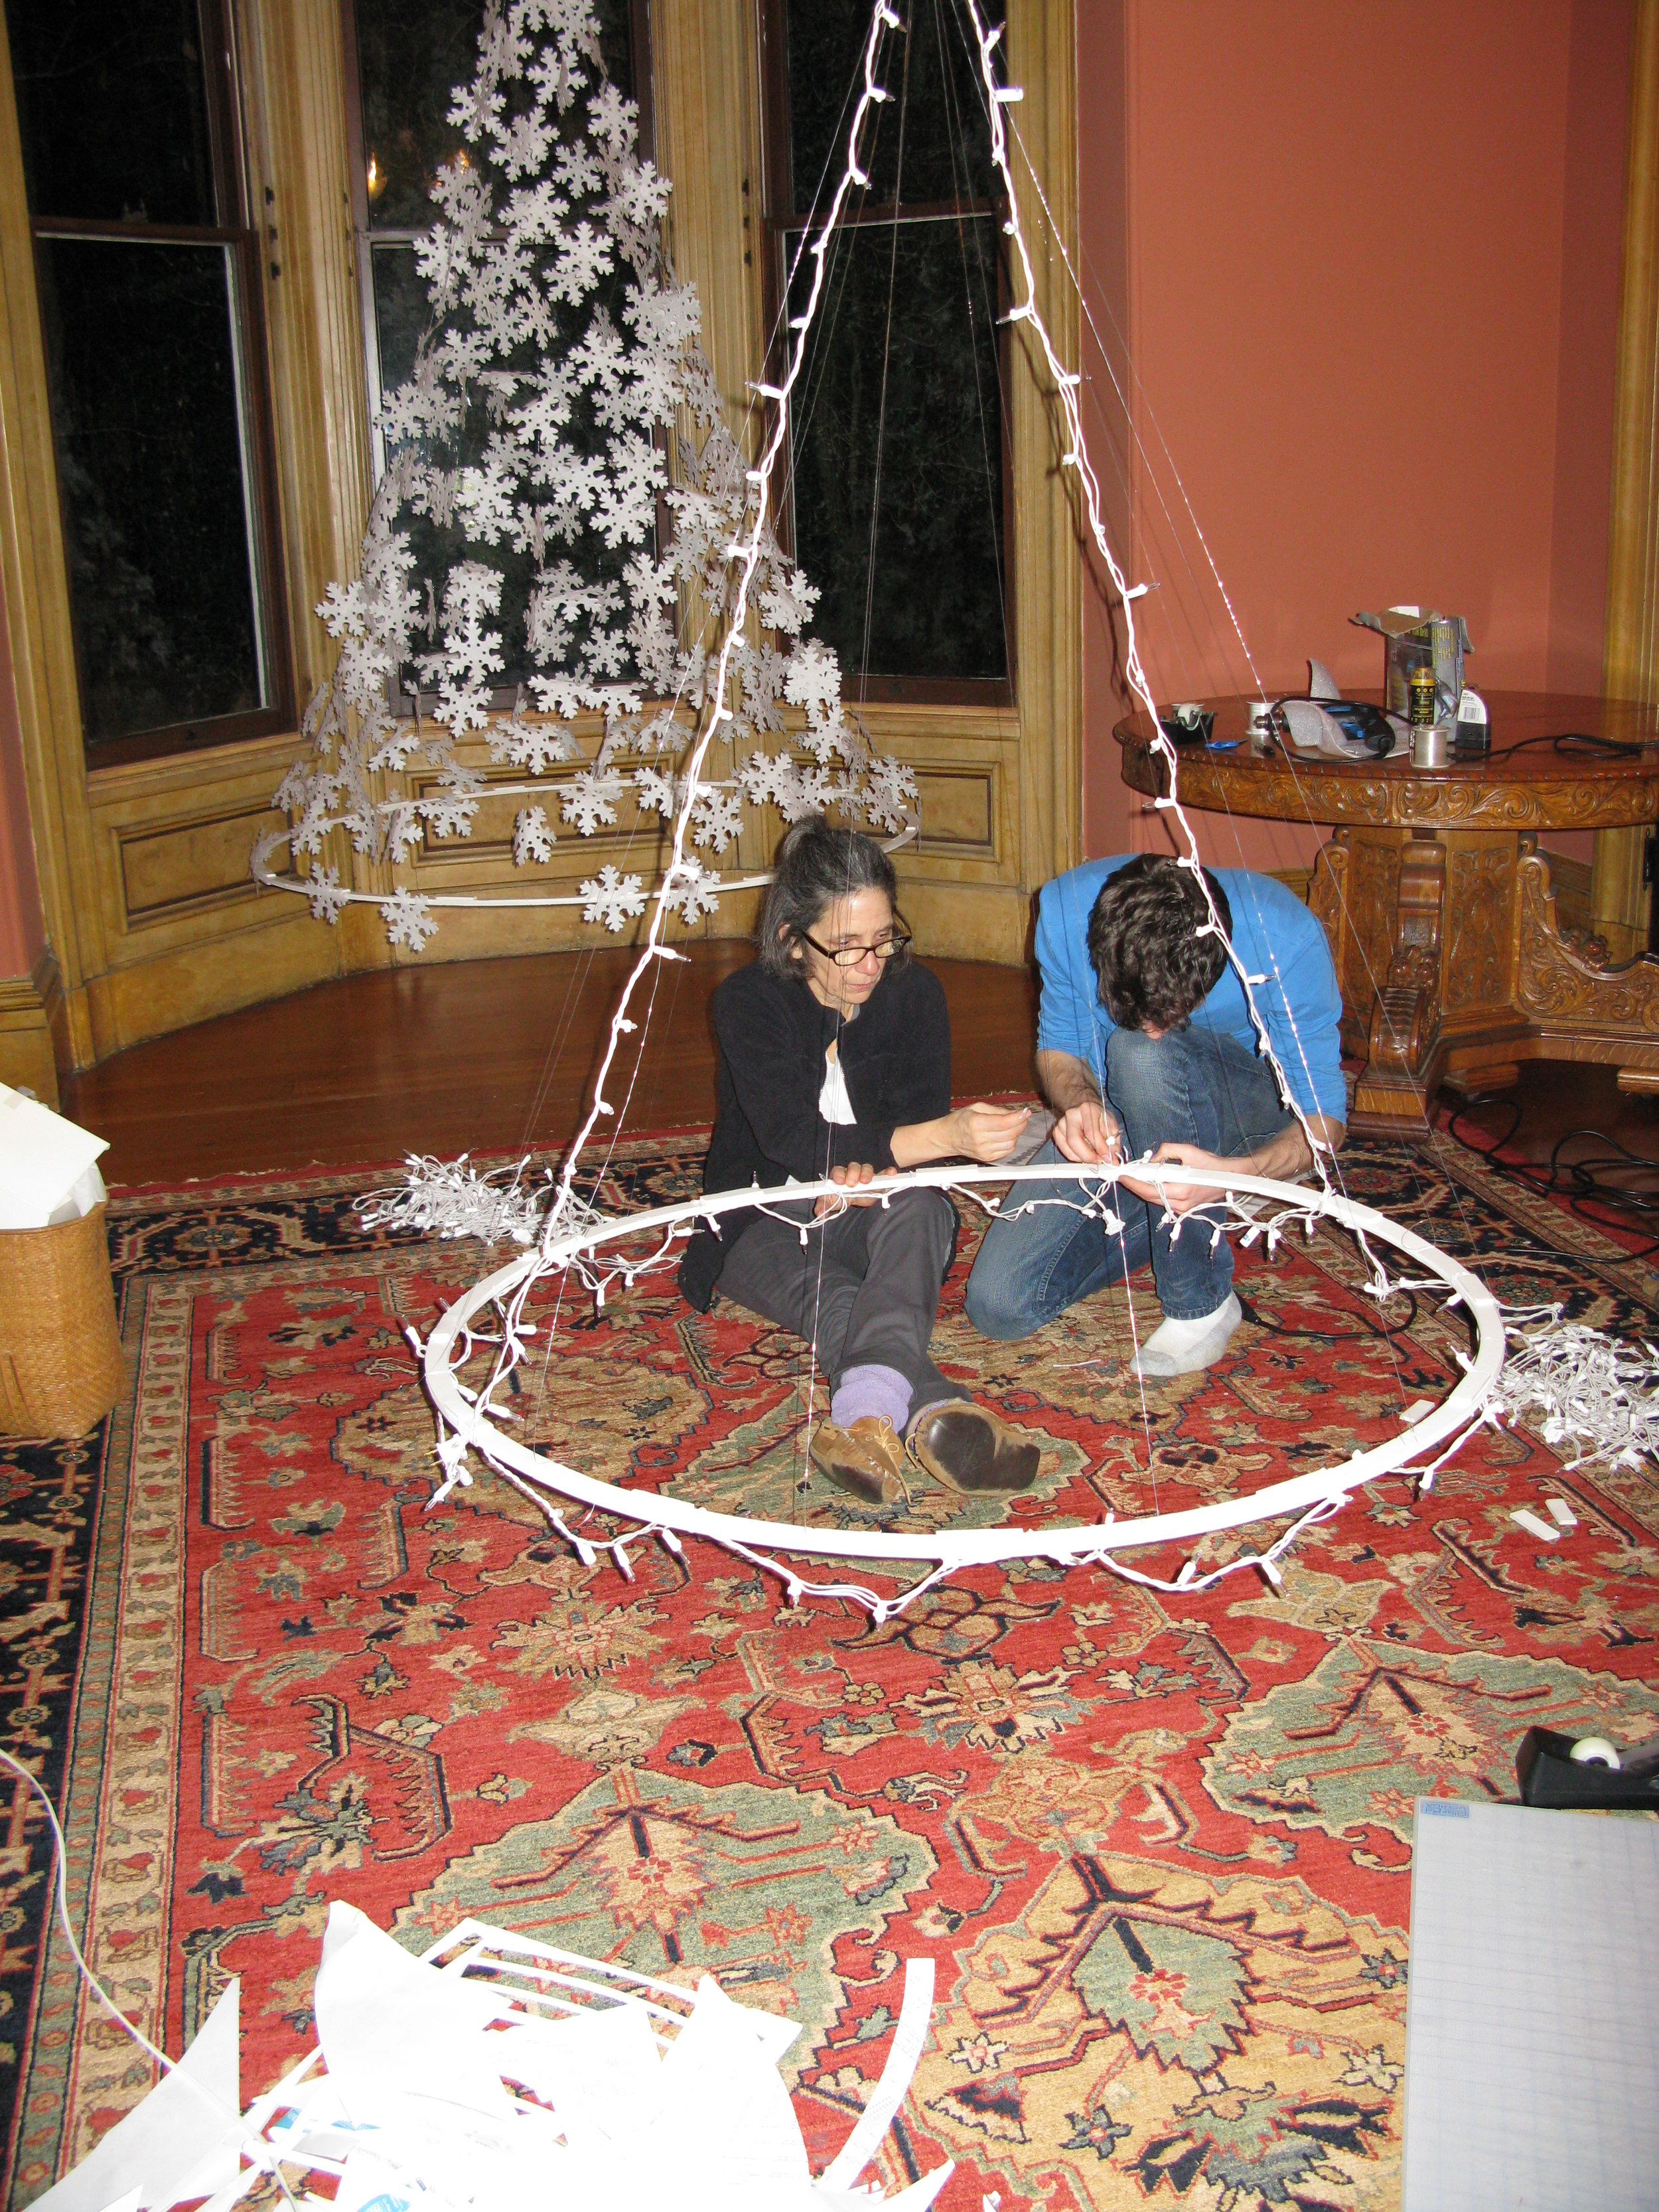 Me and my mom building the inner armature for the Christmas lights